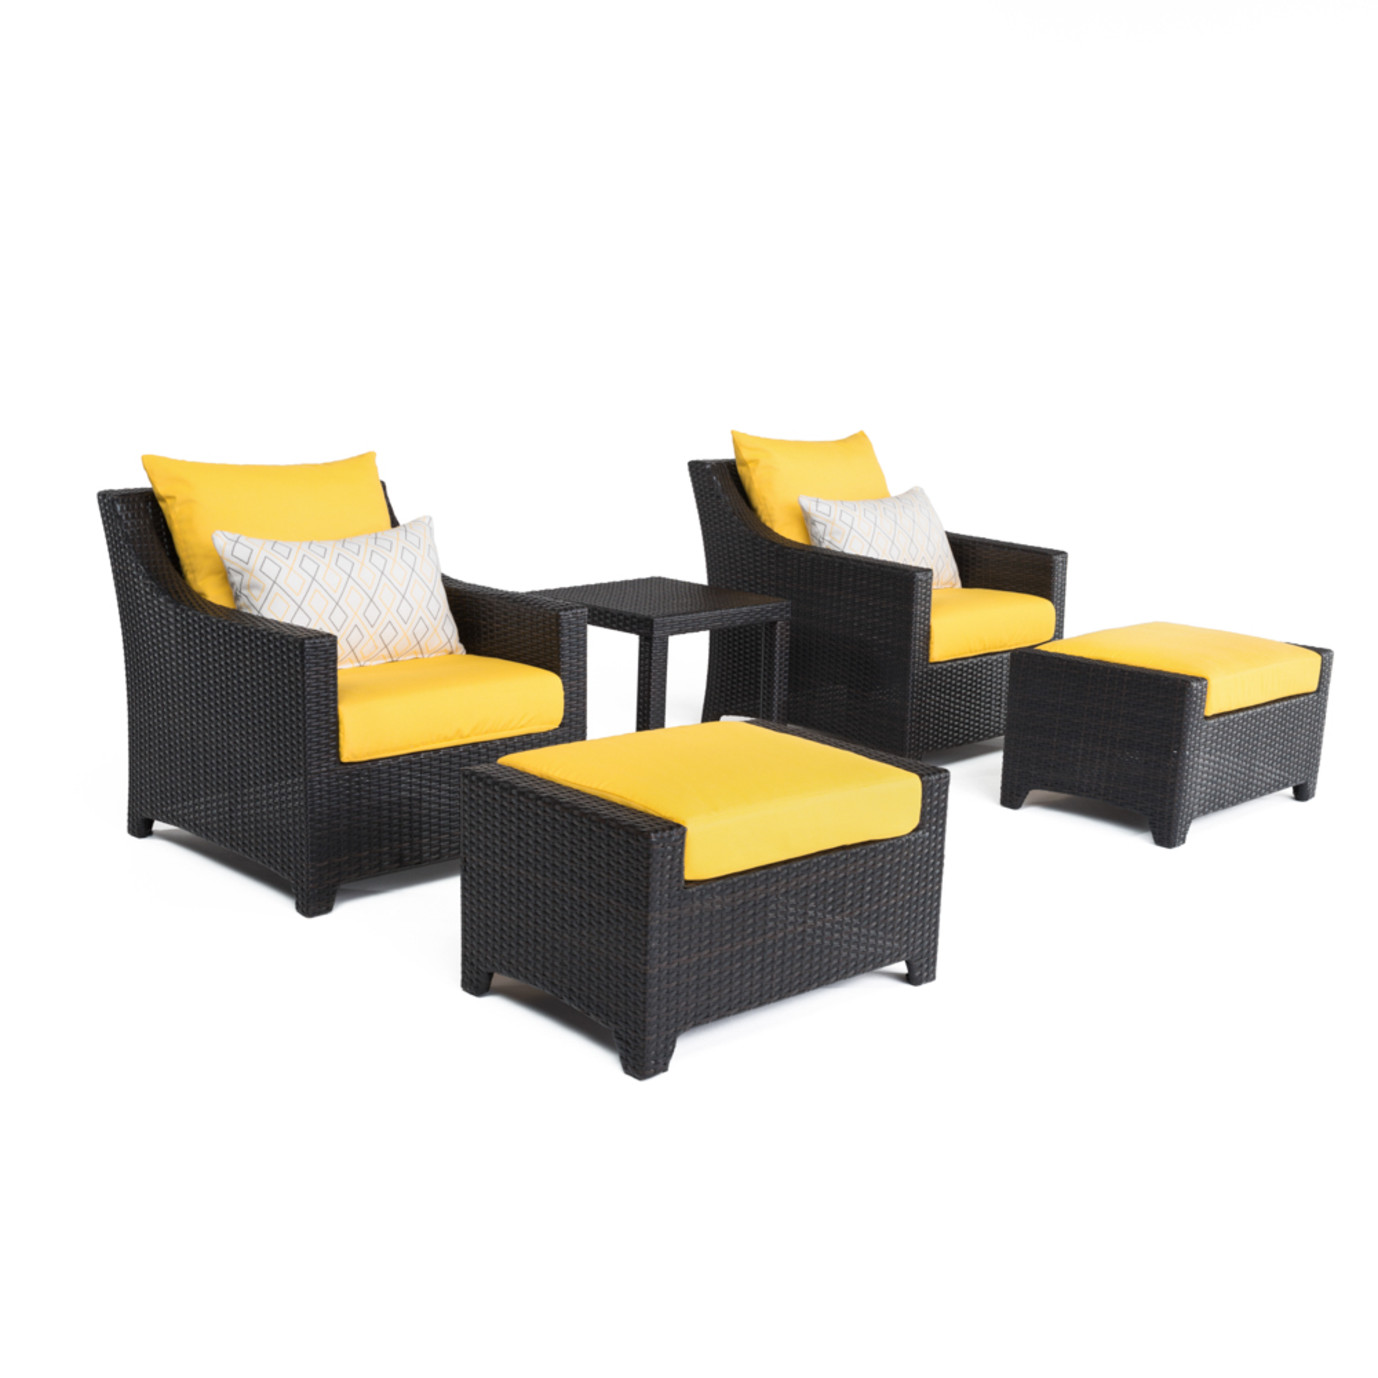 Deco™ 20pc Outdoor Estate Set - Sunflower Yellow